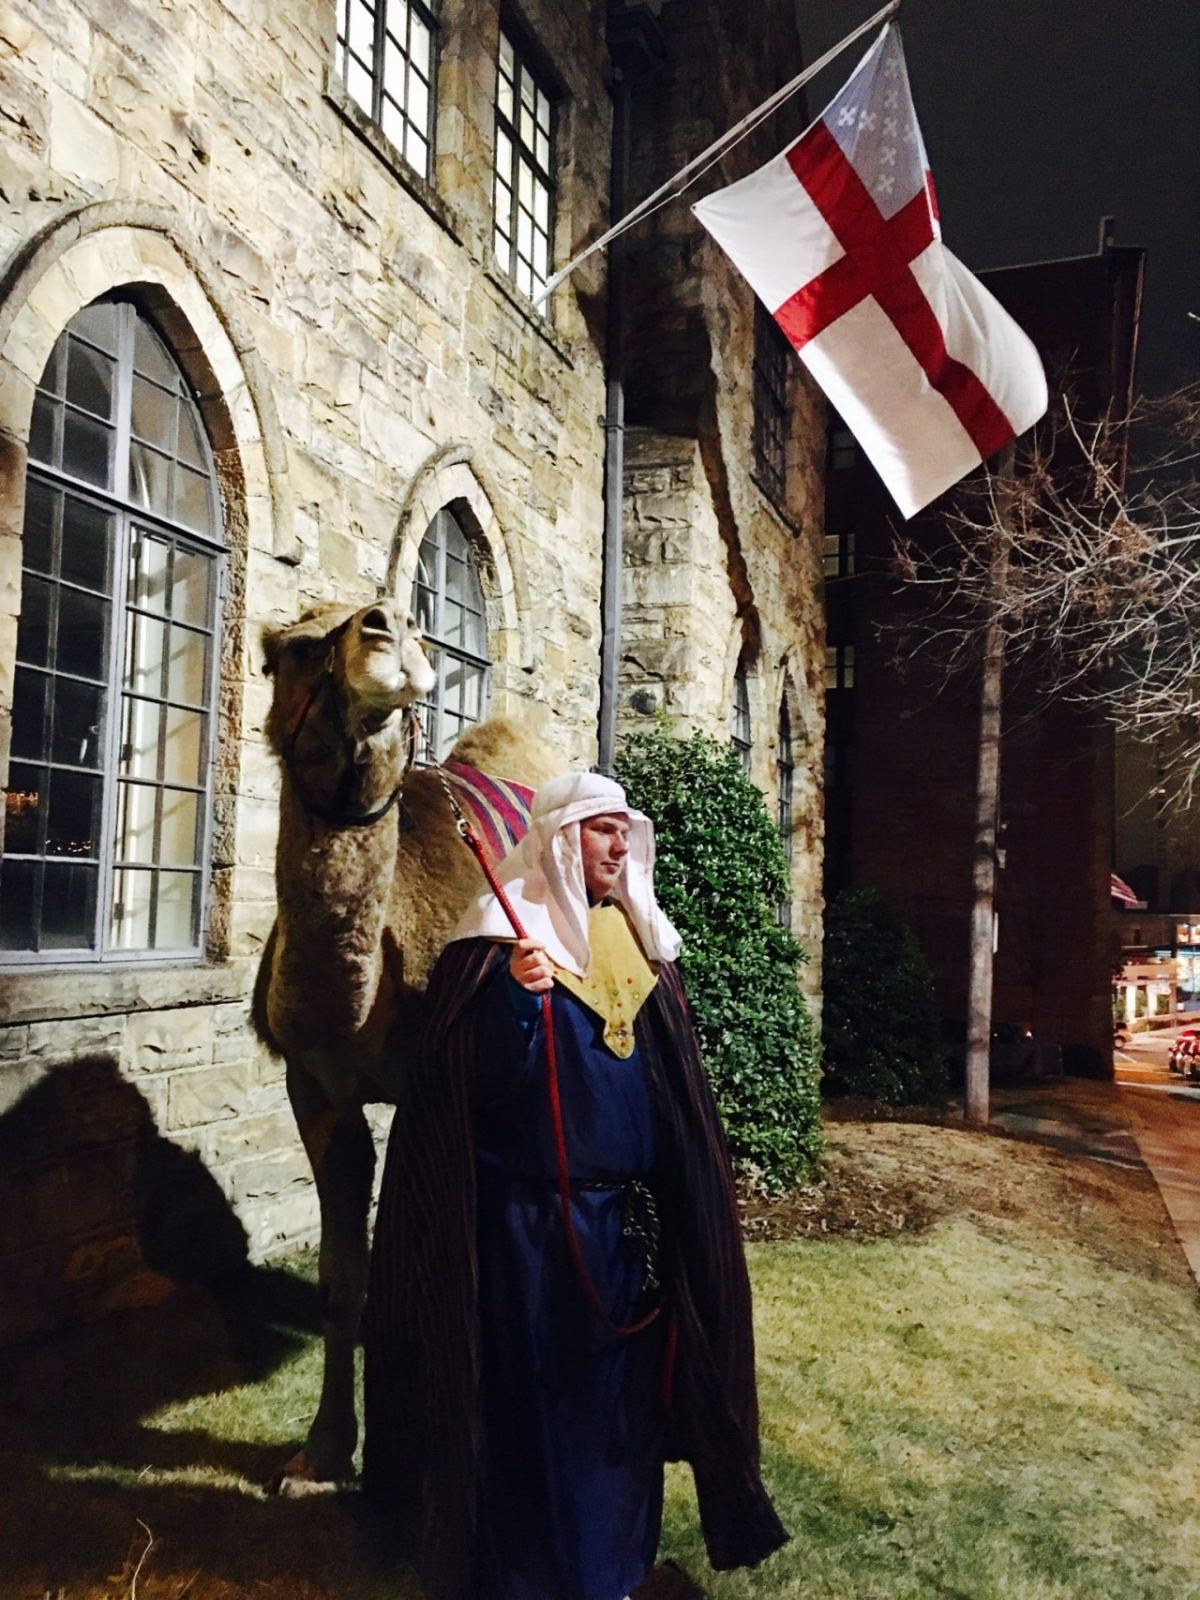 Epiphany 2017: A camel was spotted in Southside Birmingham tonight